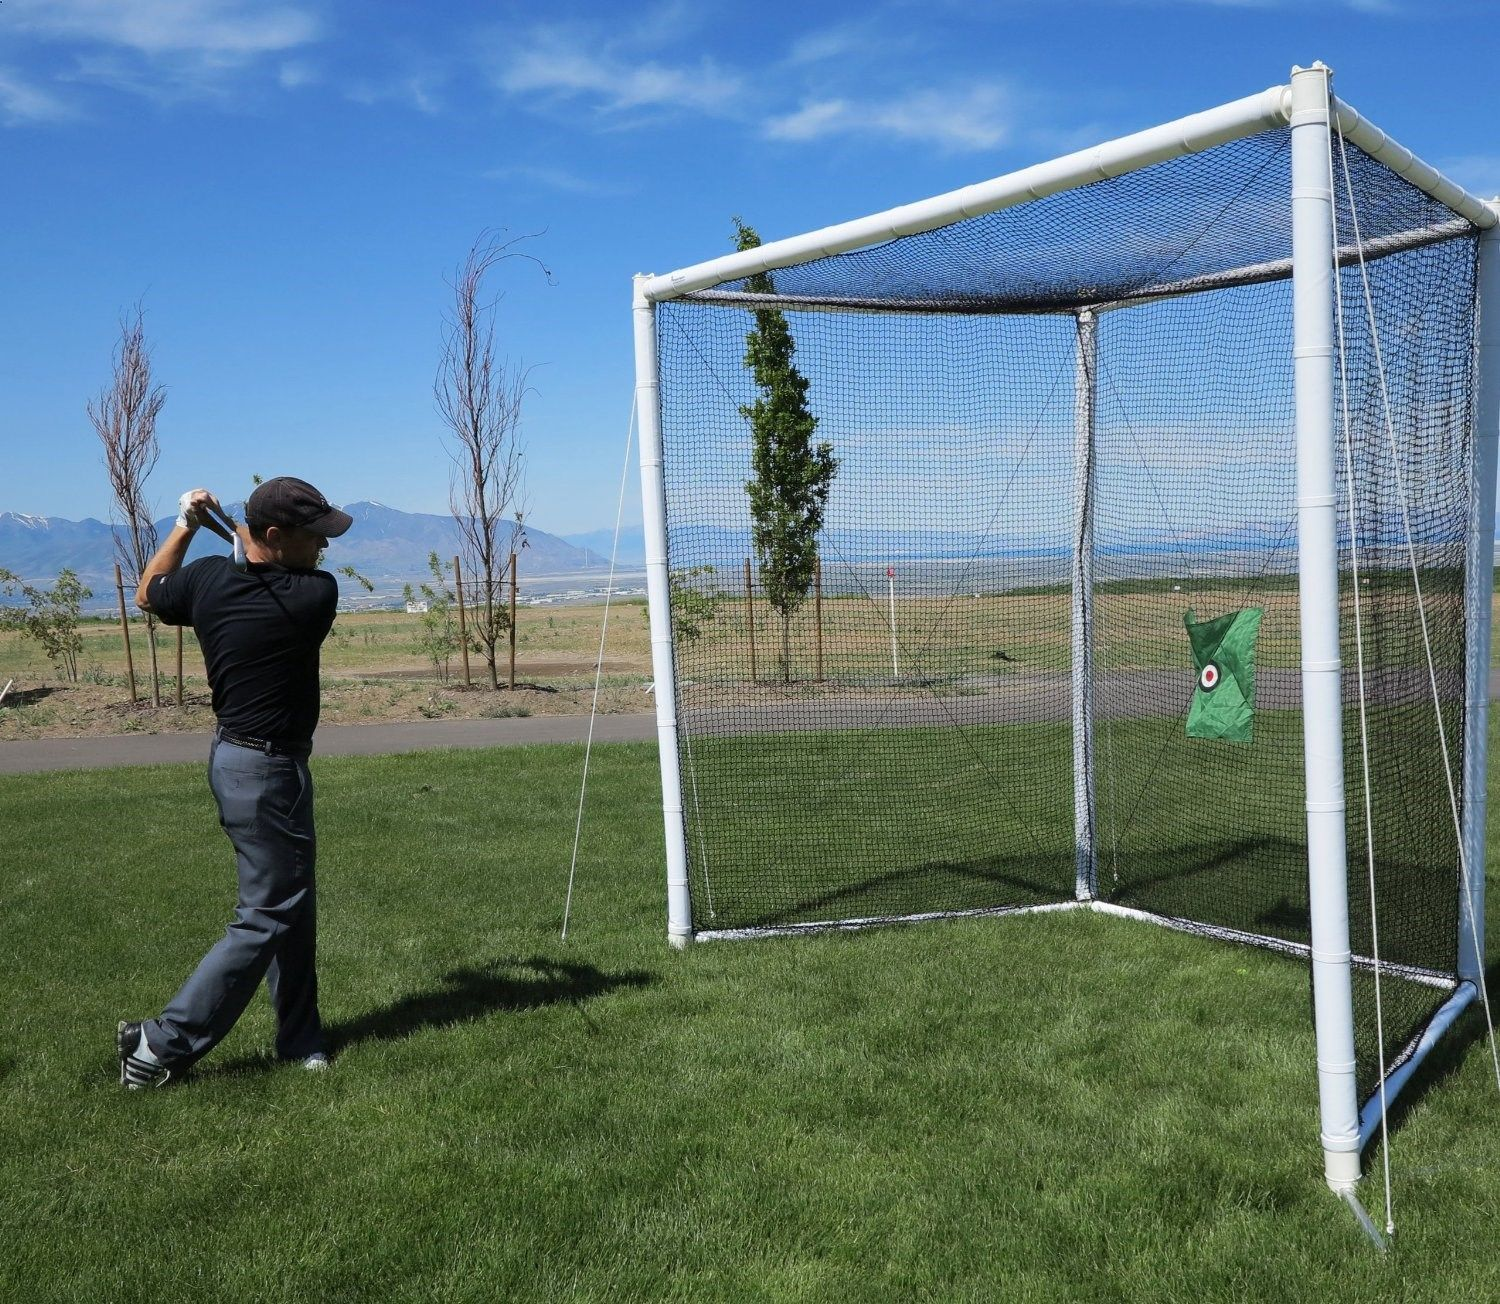 golf net turn your backyard into a driving range with this full